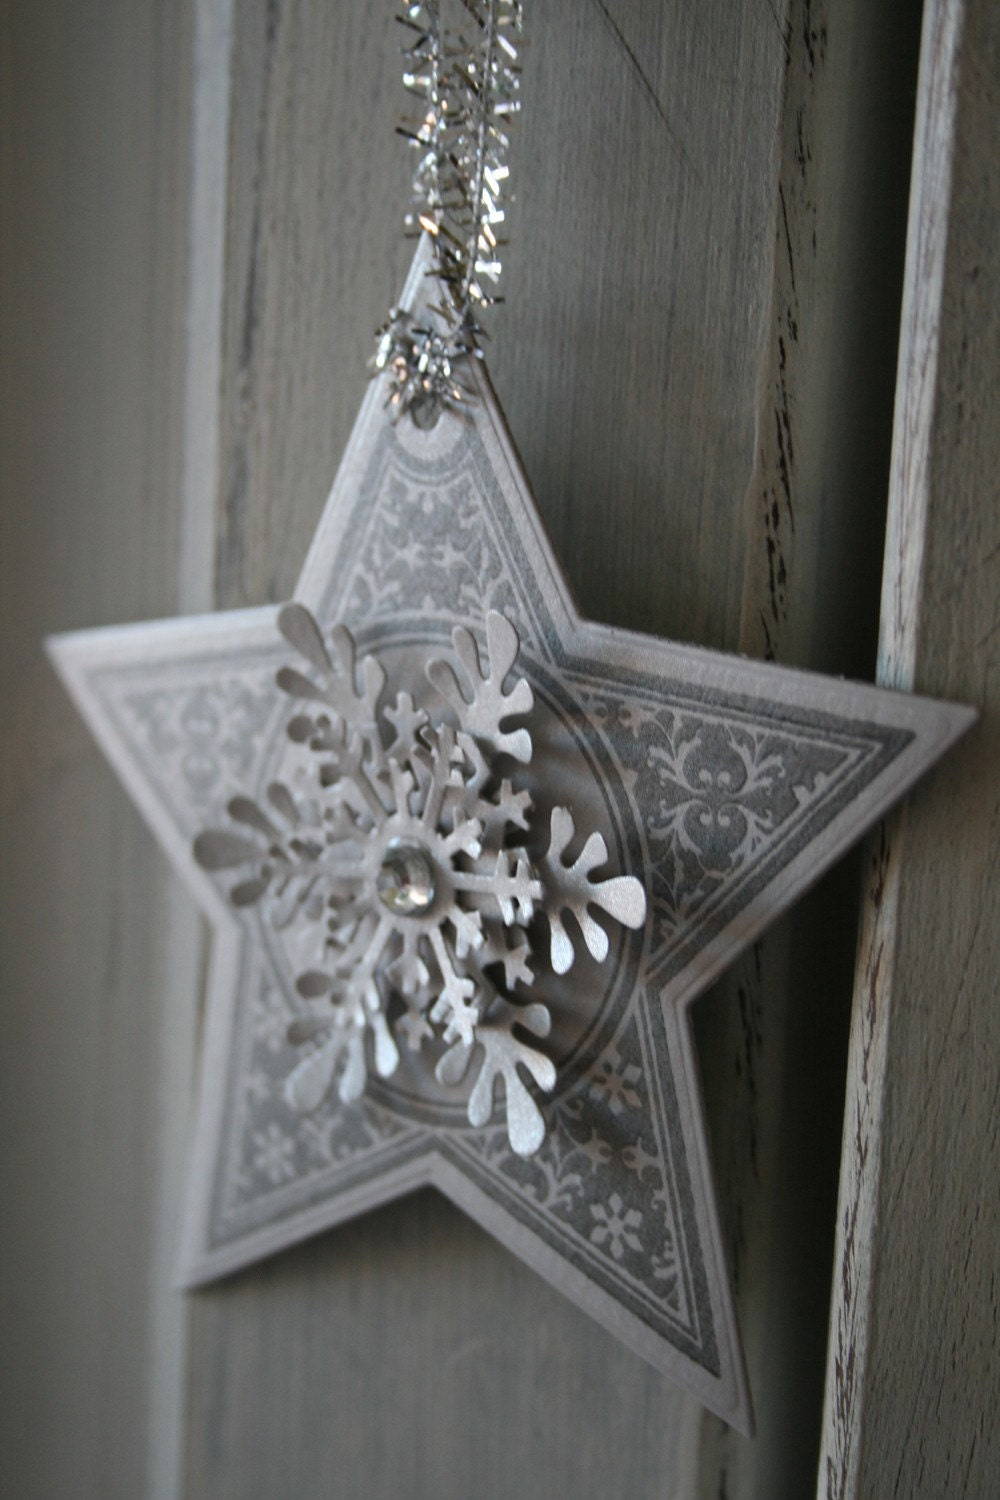 NEW - Star/ Snowflake Ornaments - Gift tags, labels - Christmas, winter, New Year - Set of 10